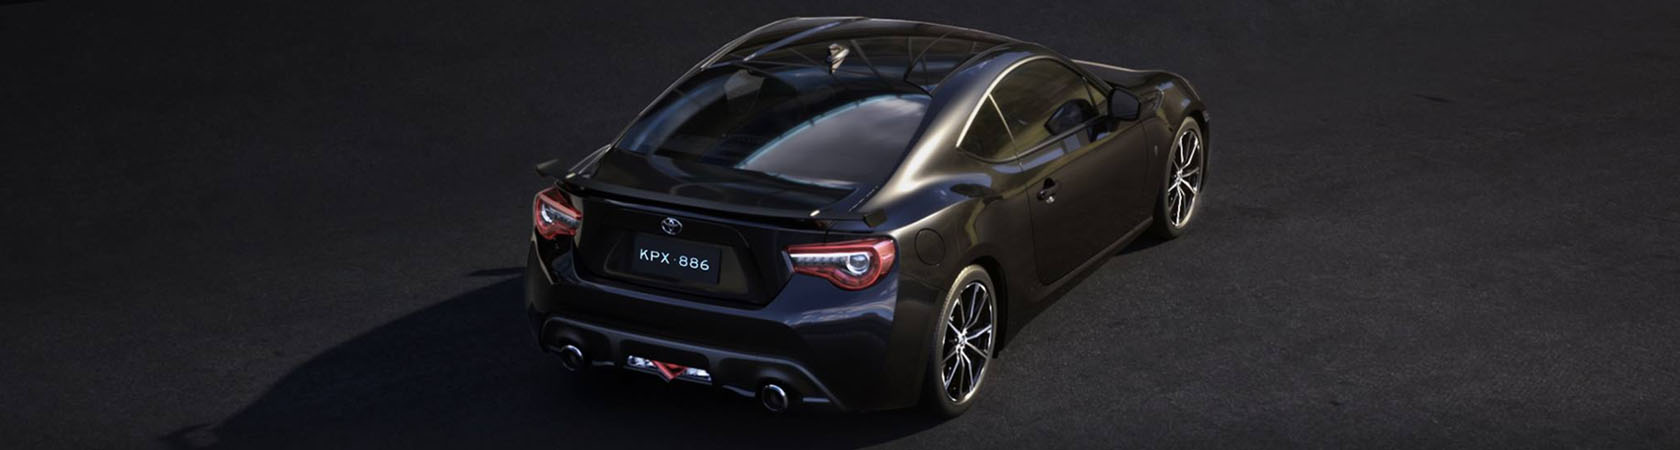 Wide Bay Toyota 86